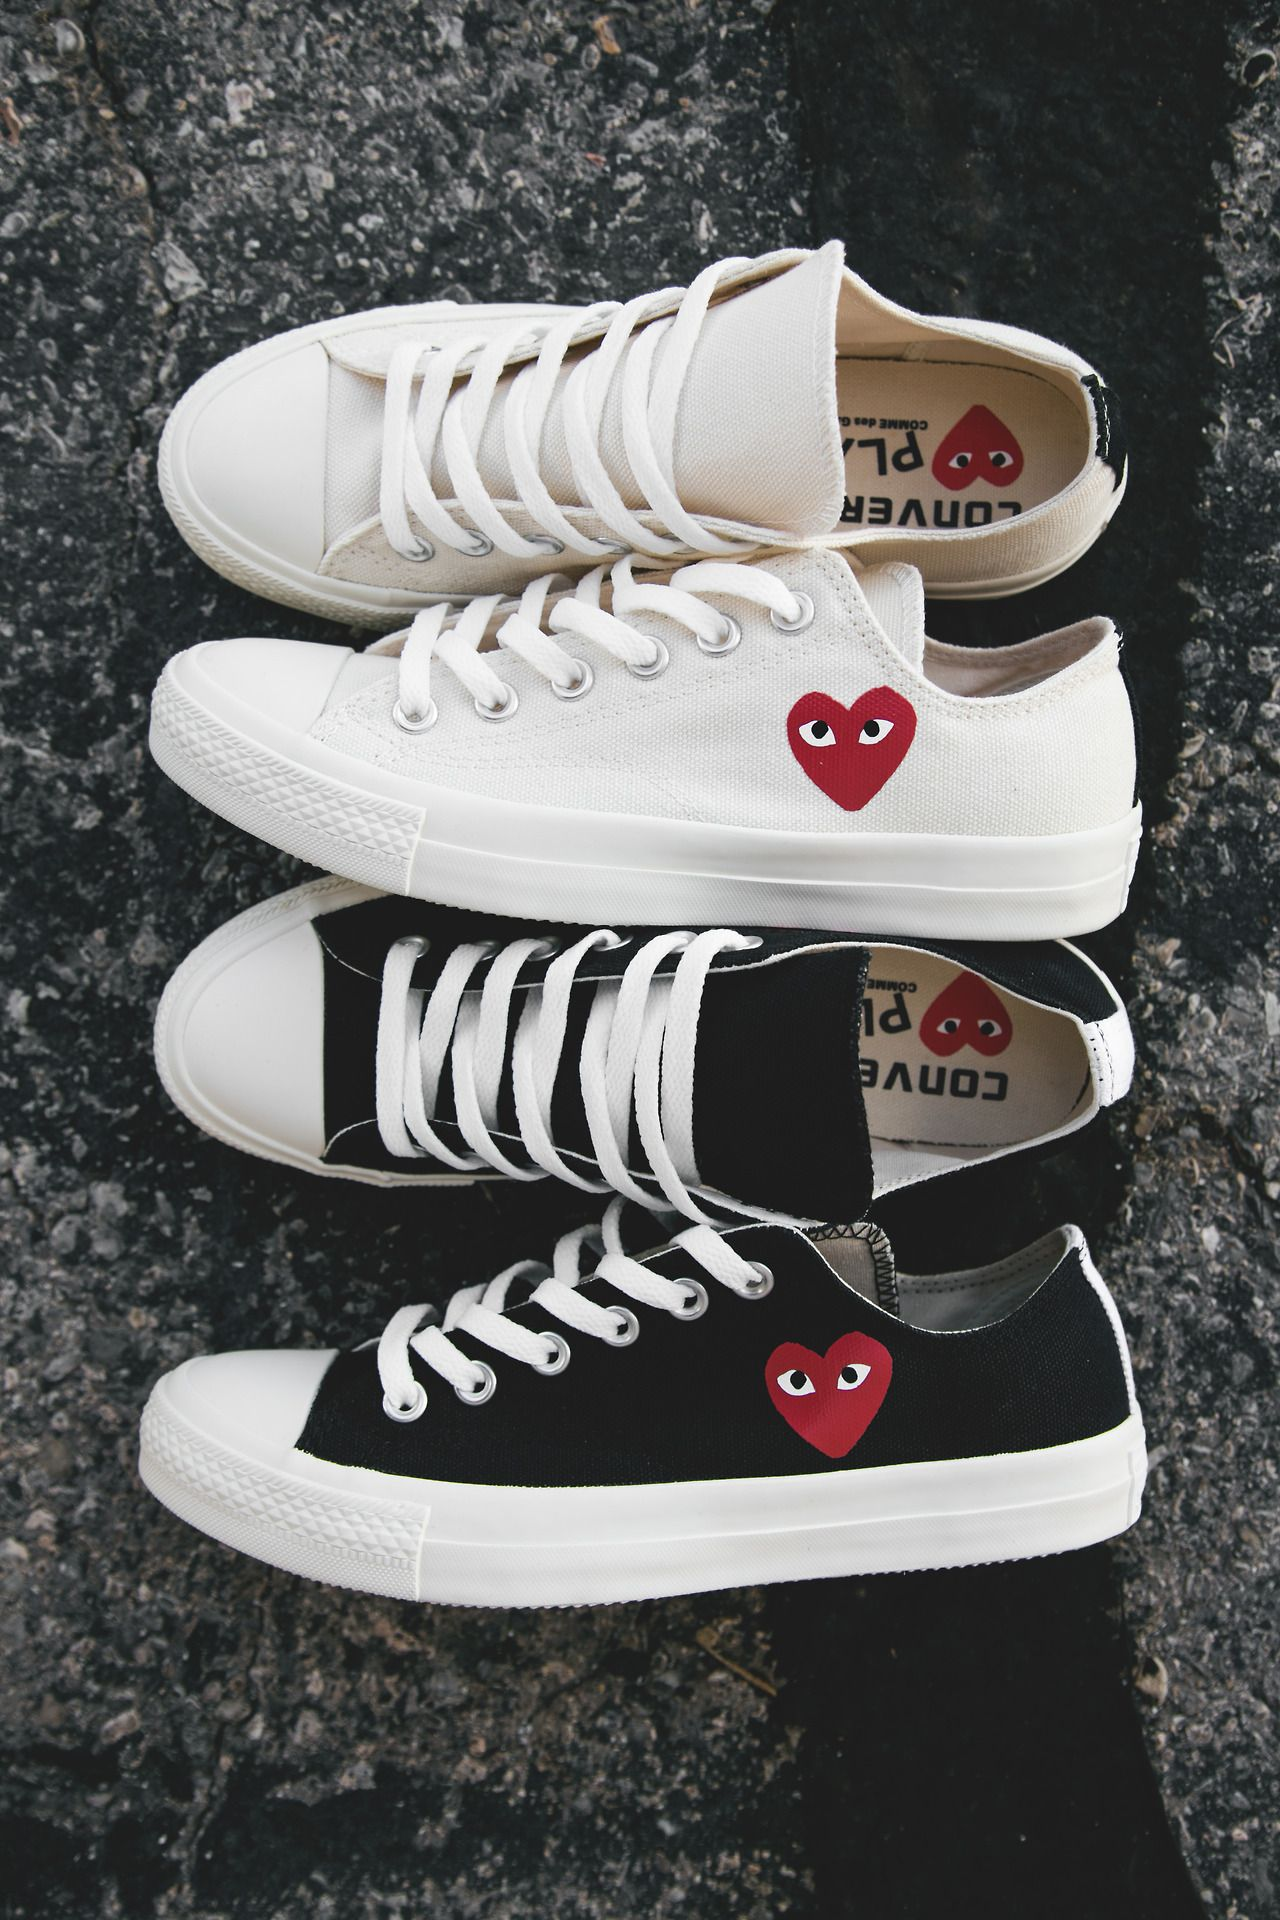 633543f924e0 Converse x Comme Des Garçons Collection Available Now 702-463-3322  www.featuresneakerboutique.com